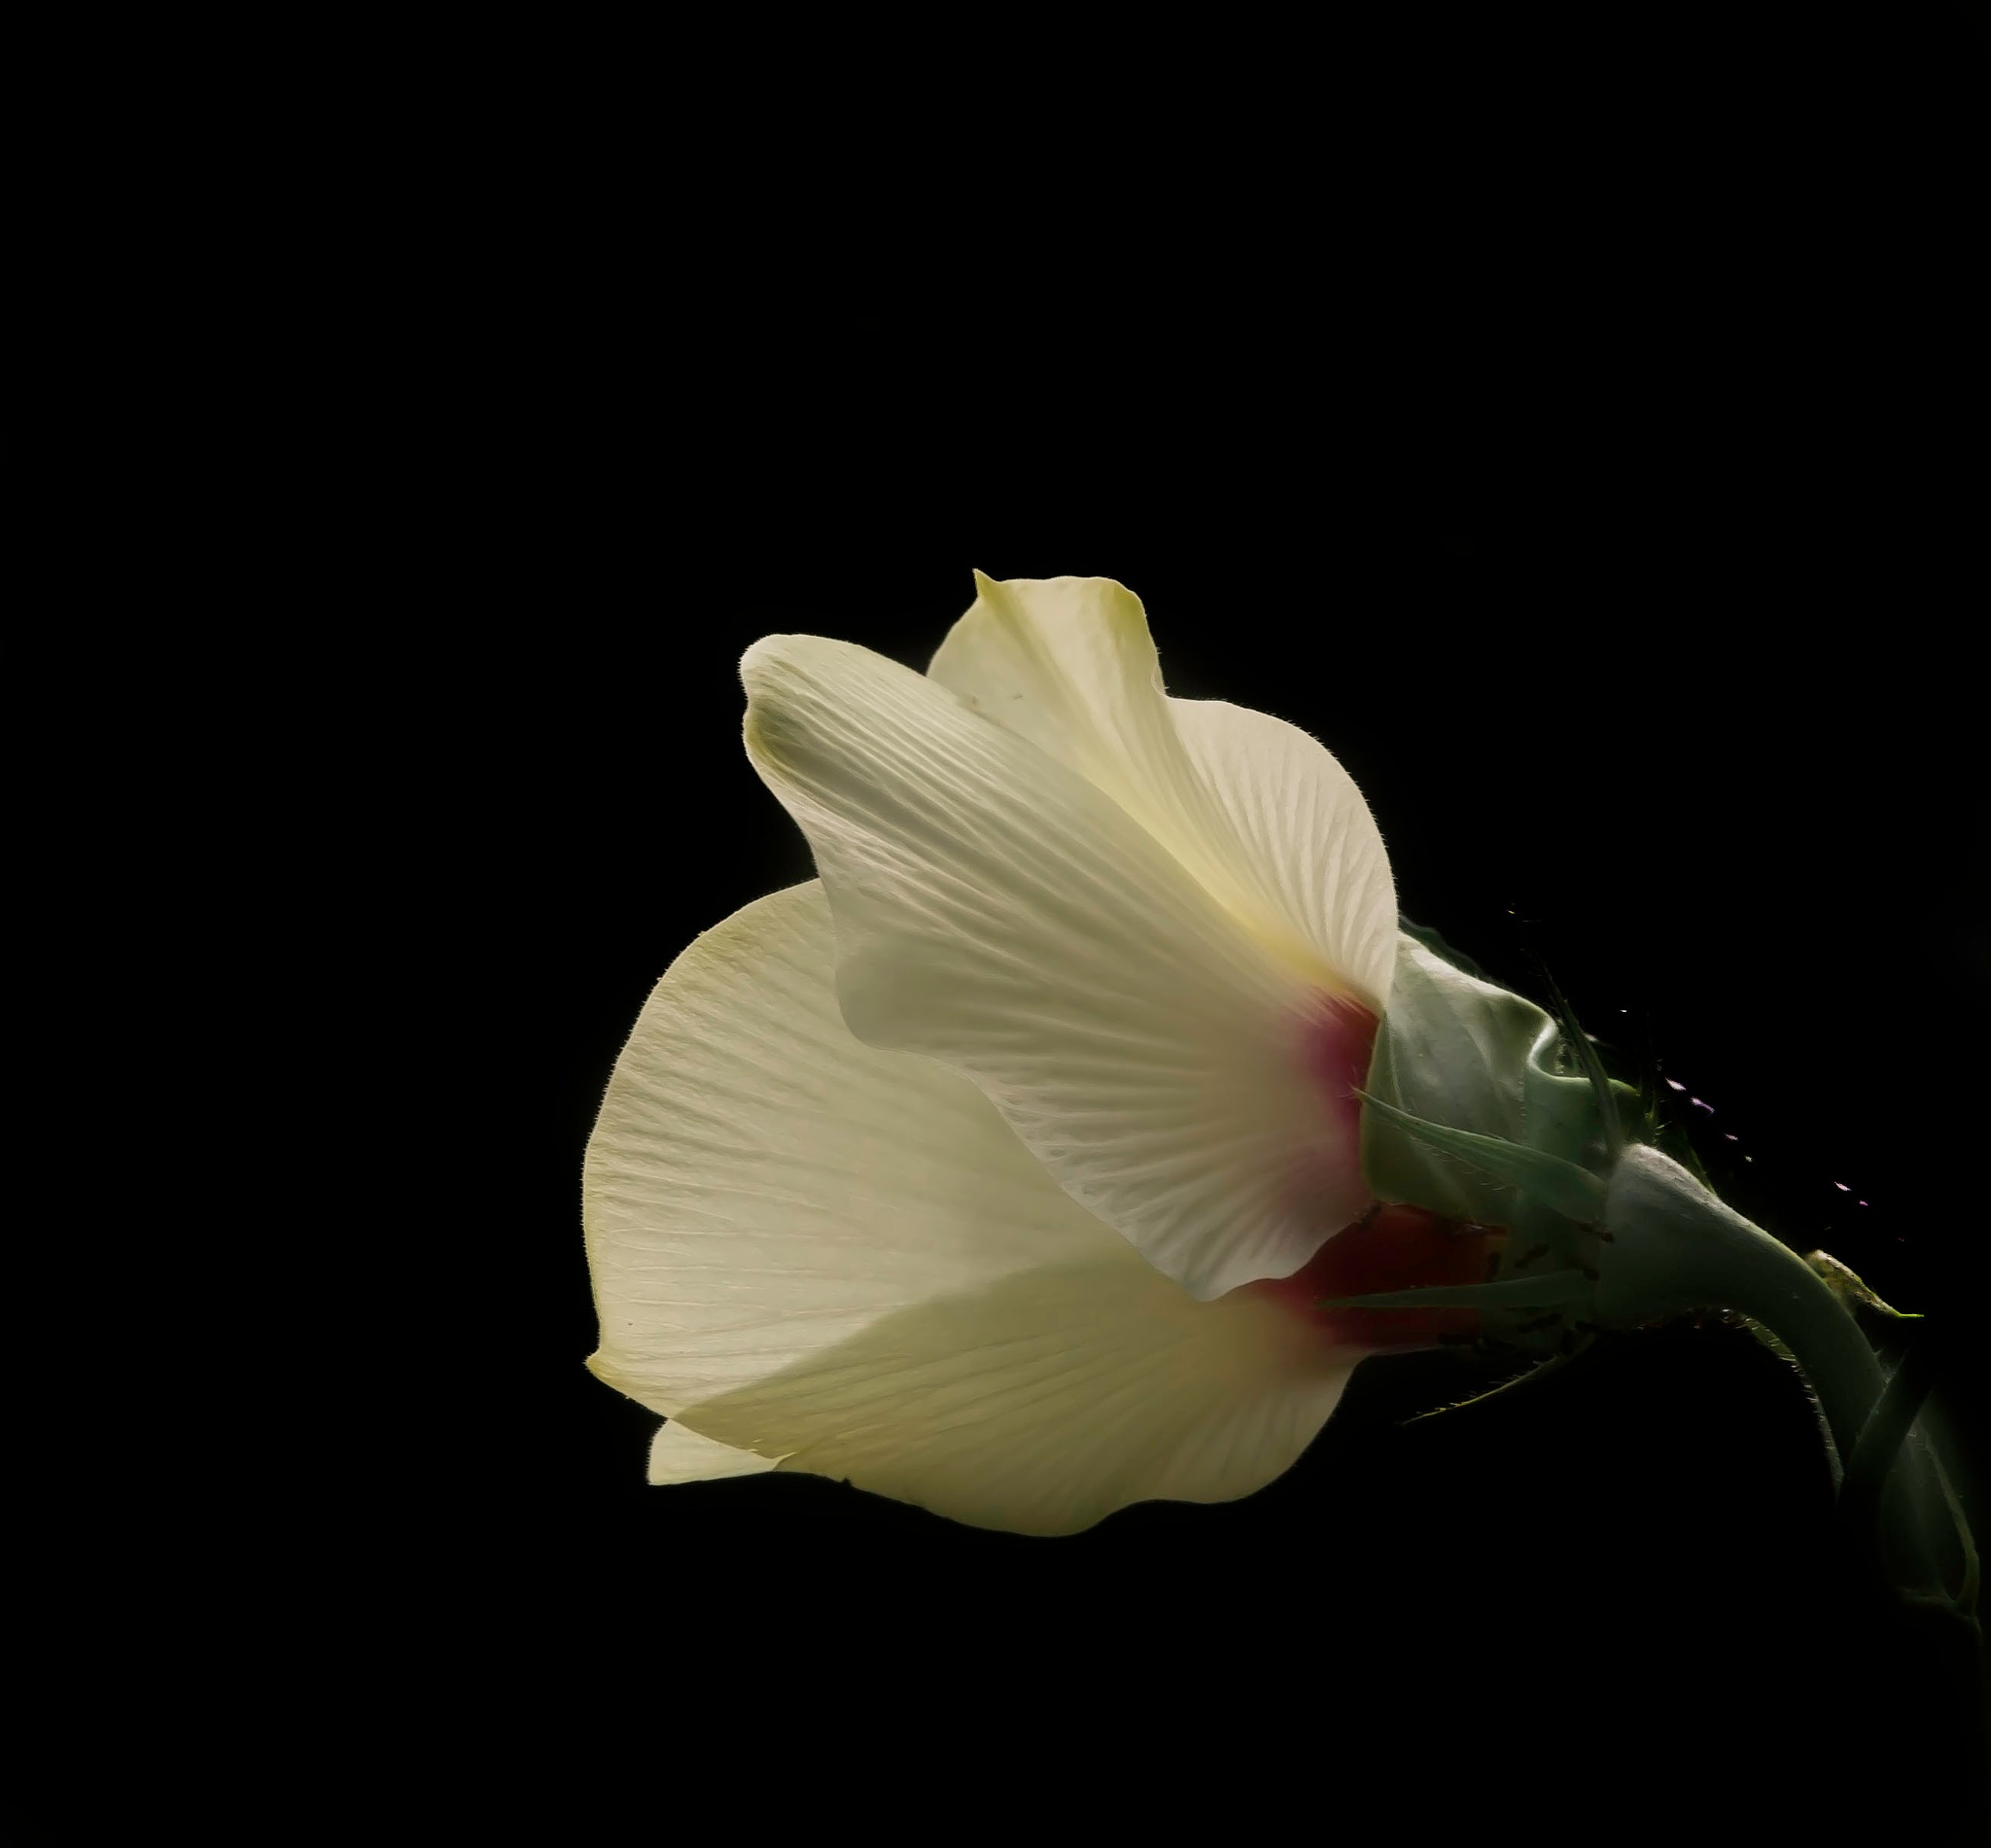 Okra Blossom Opens To The Light by Edward Brown